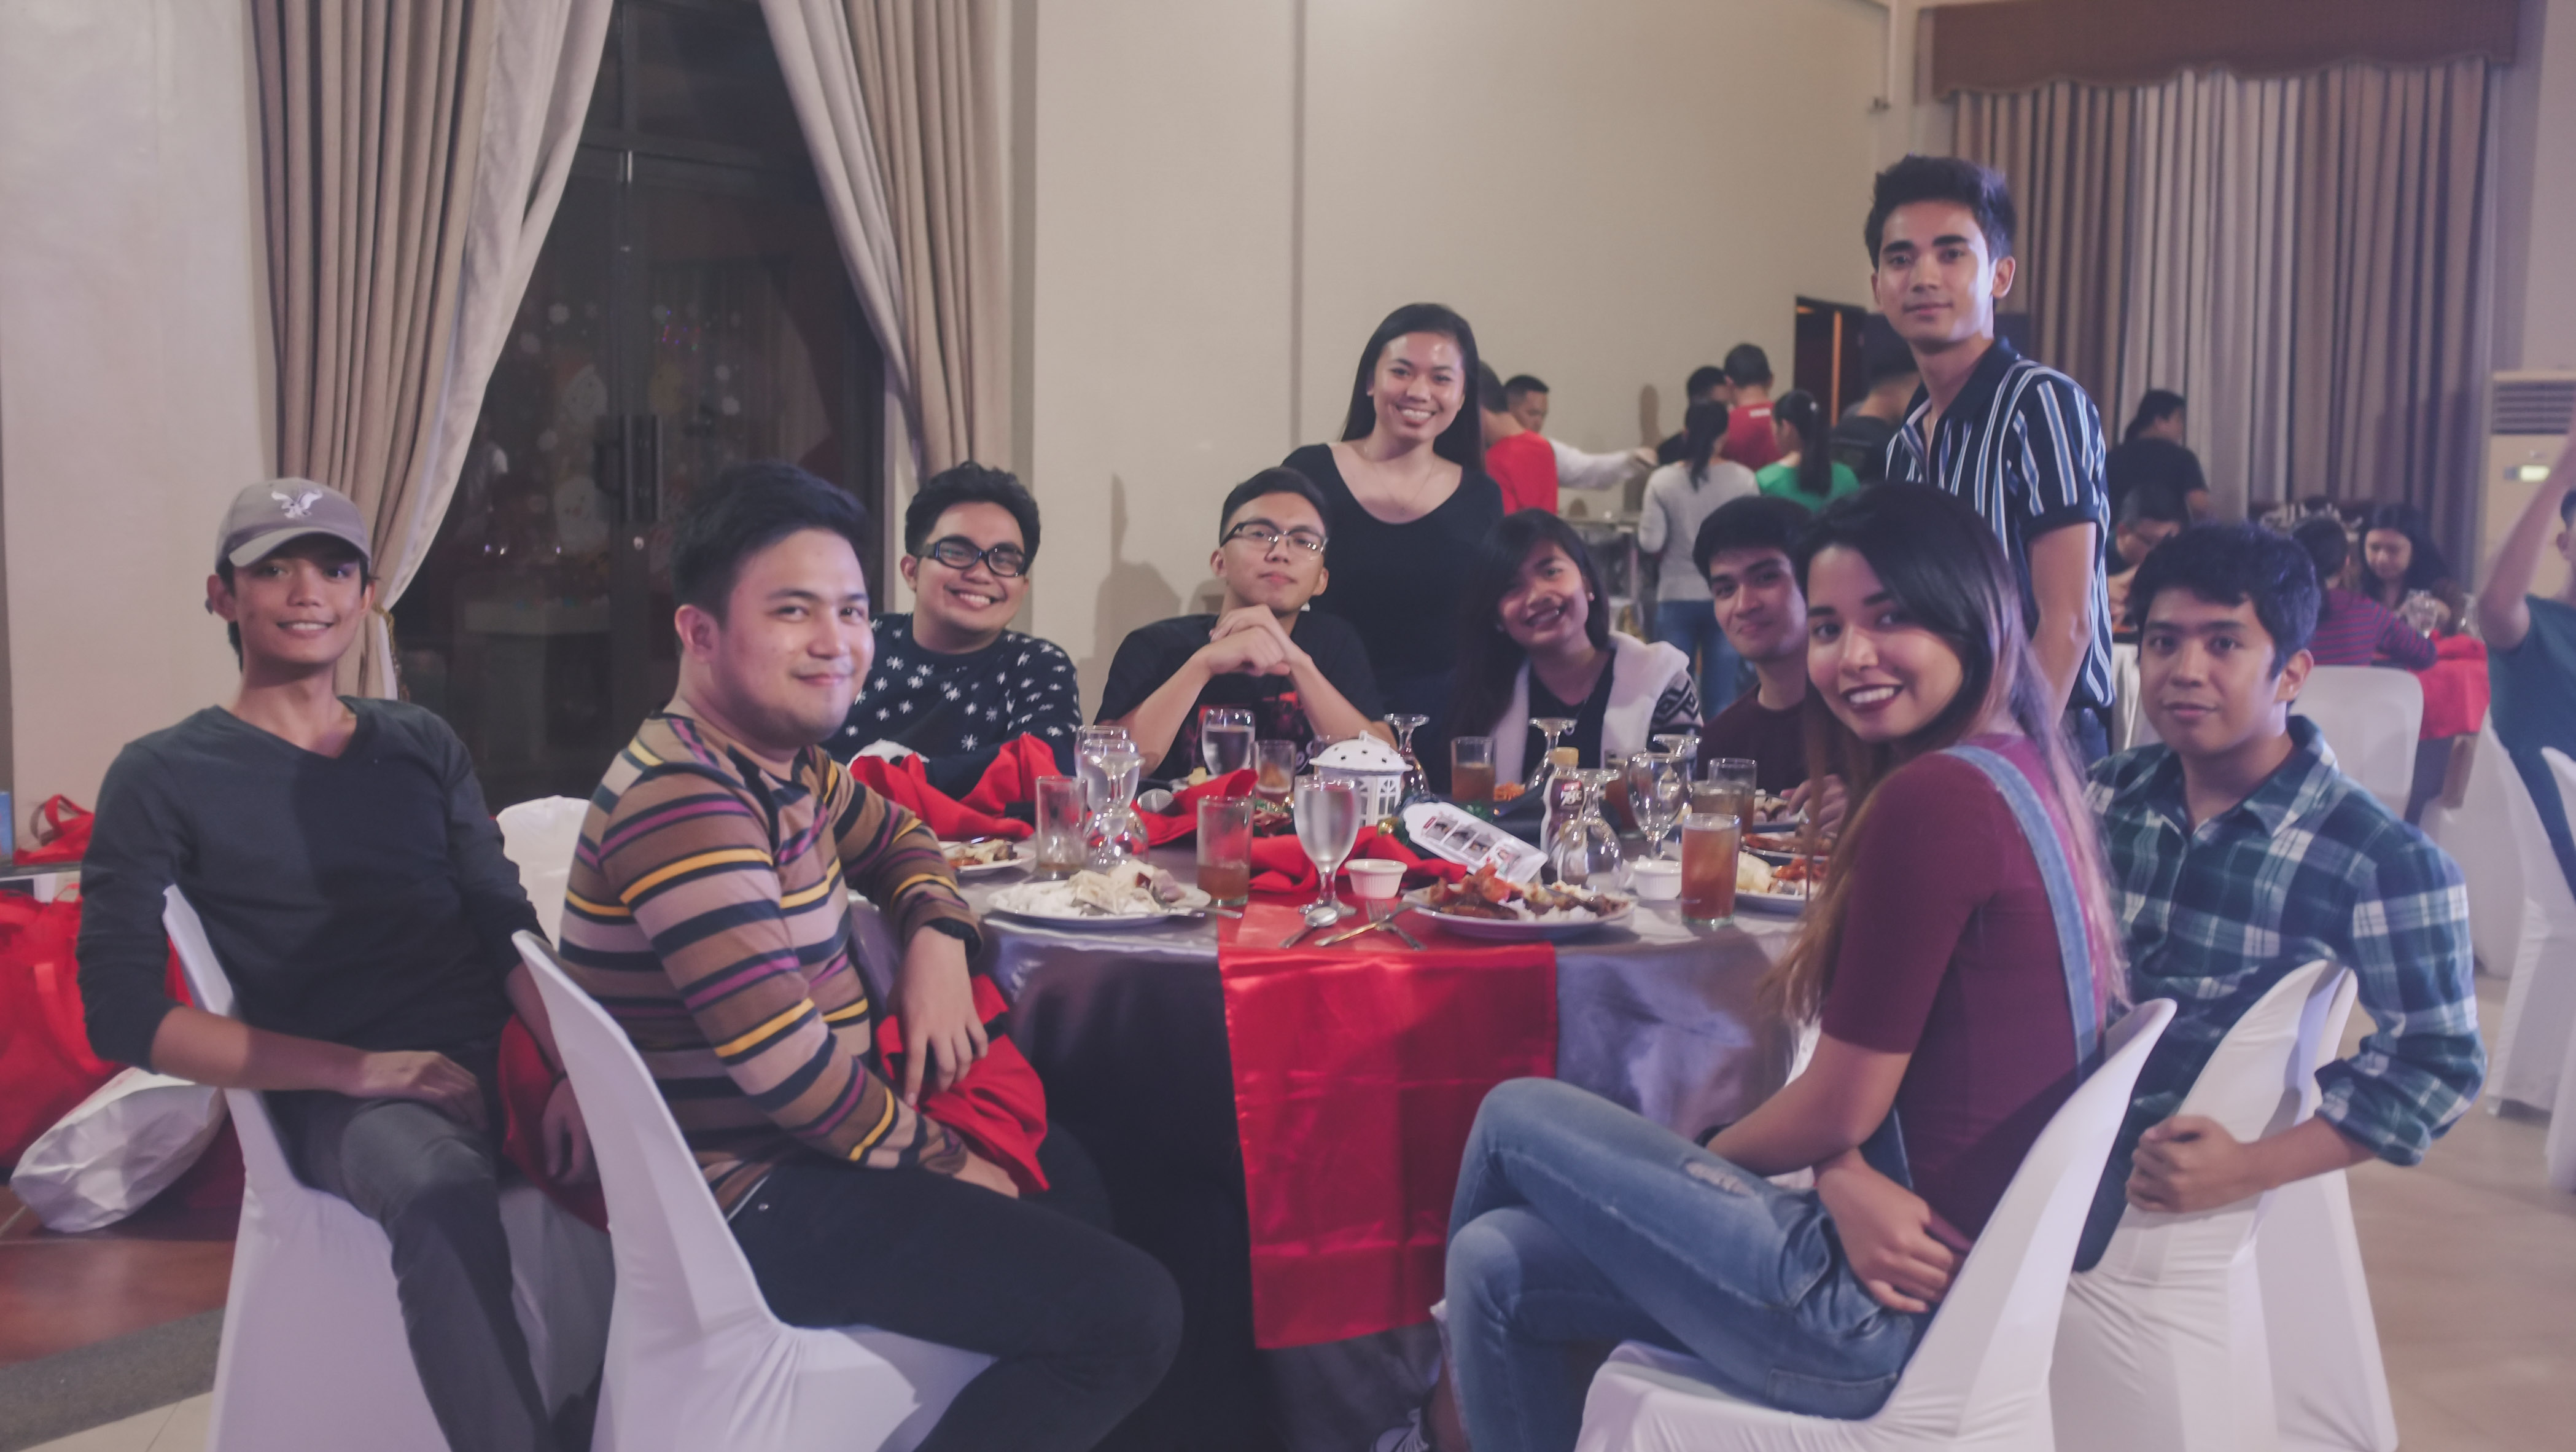 CHRISTMAS PARTY_2018-34288 x 2416